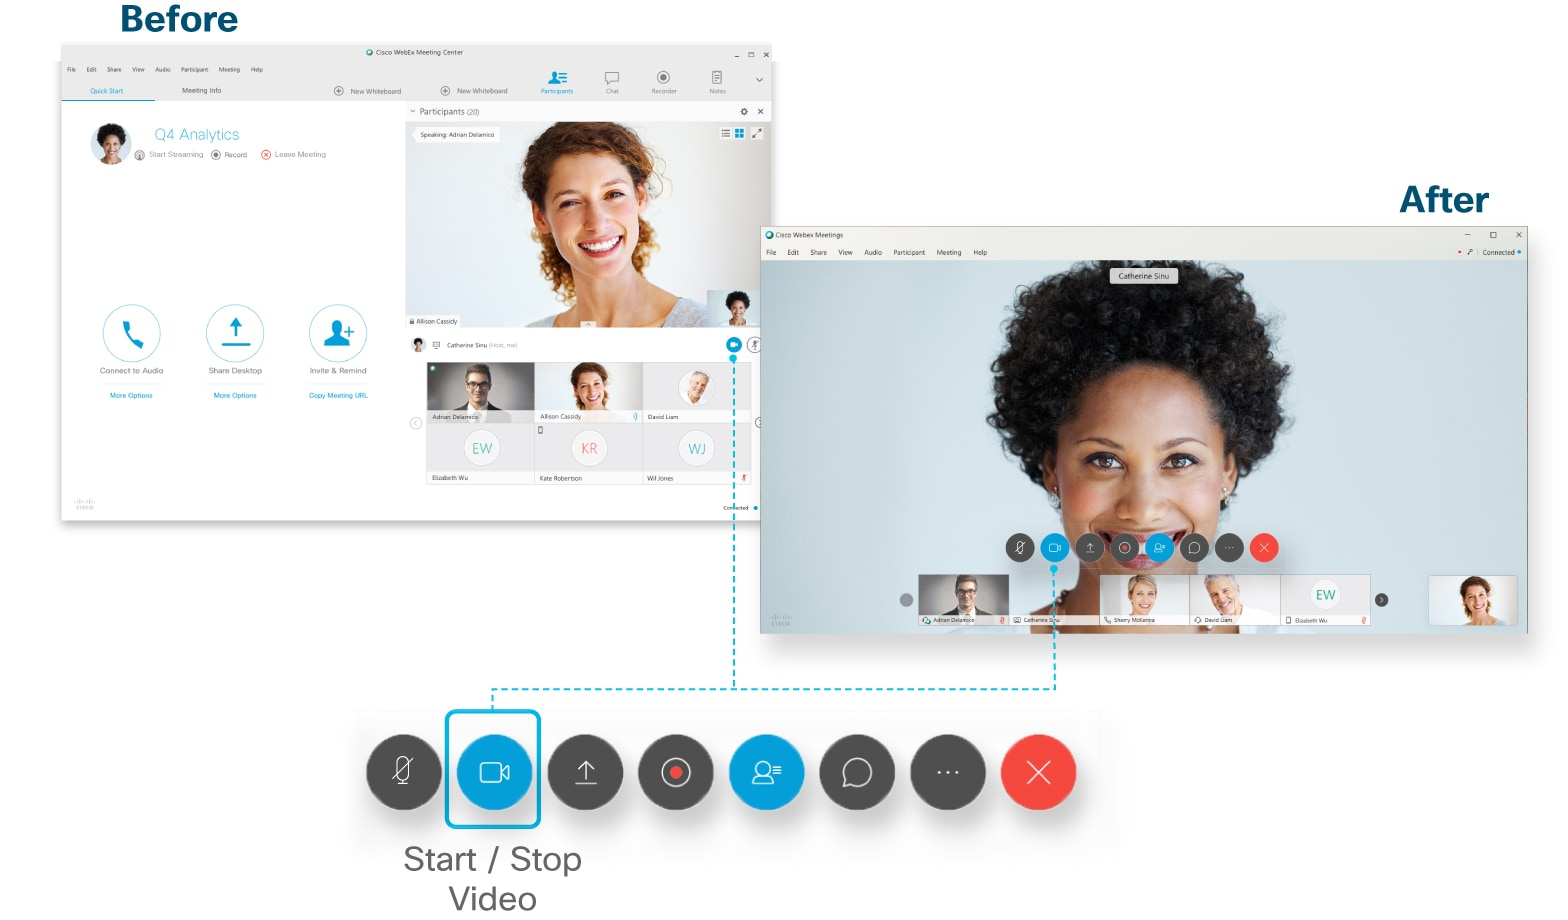 Start or Stop Your Video During a Cisco Webex Meeting